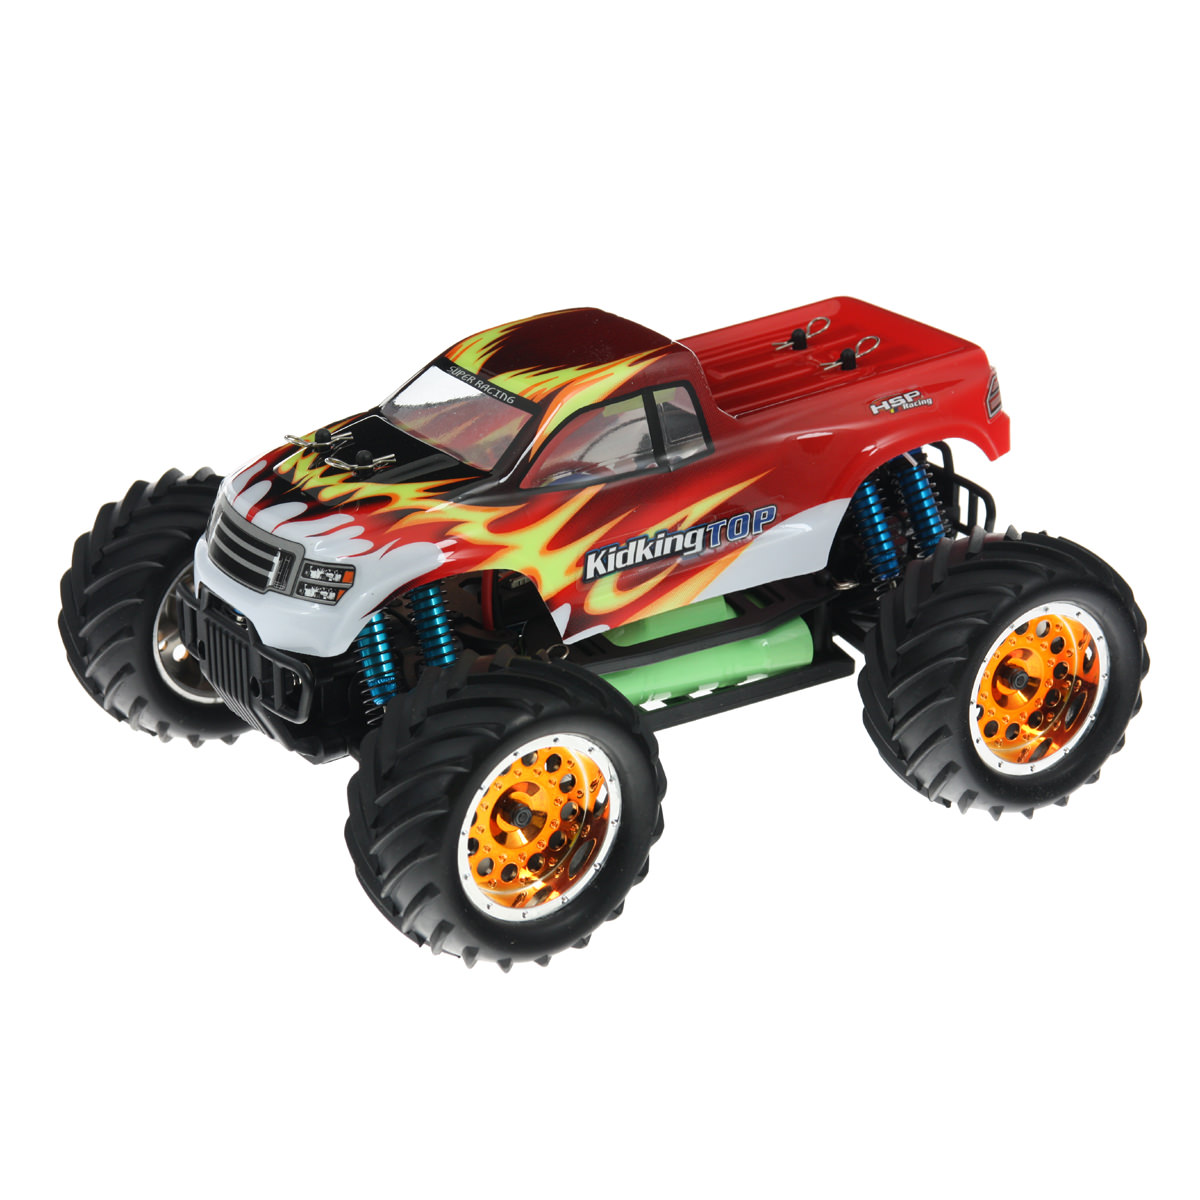 Hsp Rc Truck Nitro Gas Power Off Road Monster Truck 94188: HSP 94186TOP-18610 1/16 Red RC Monster Truck At Hobby